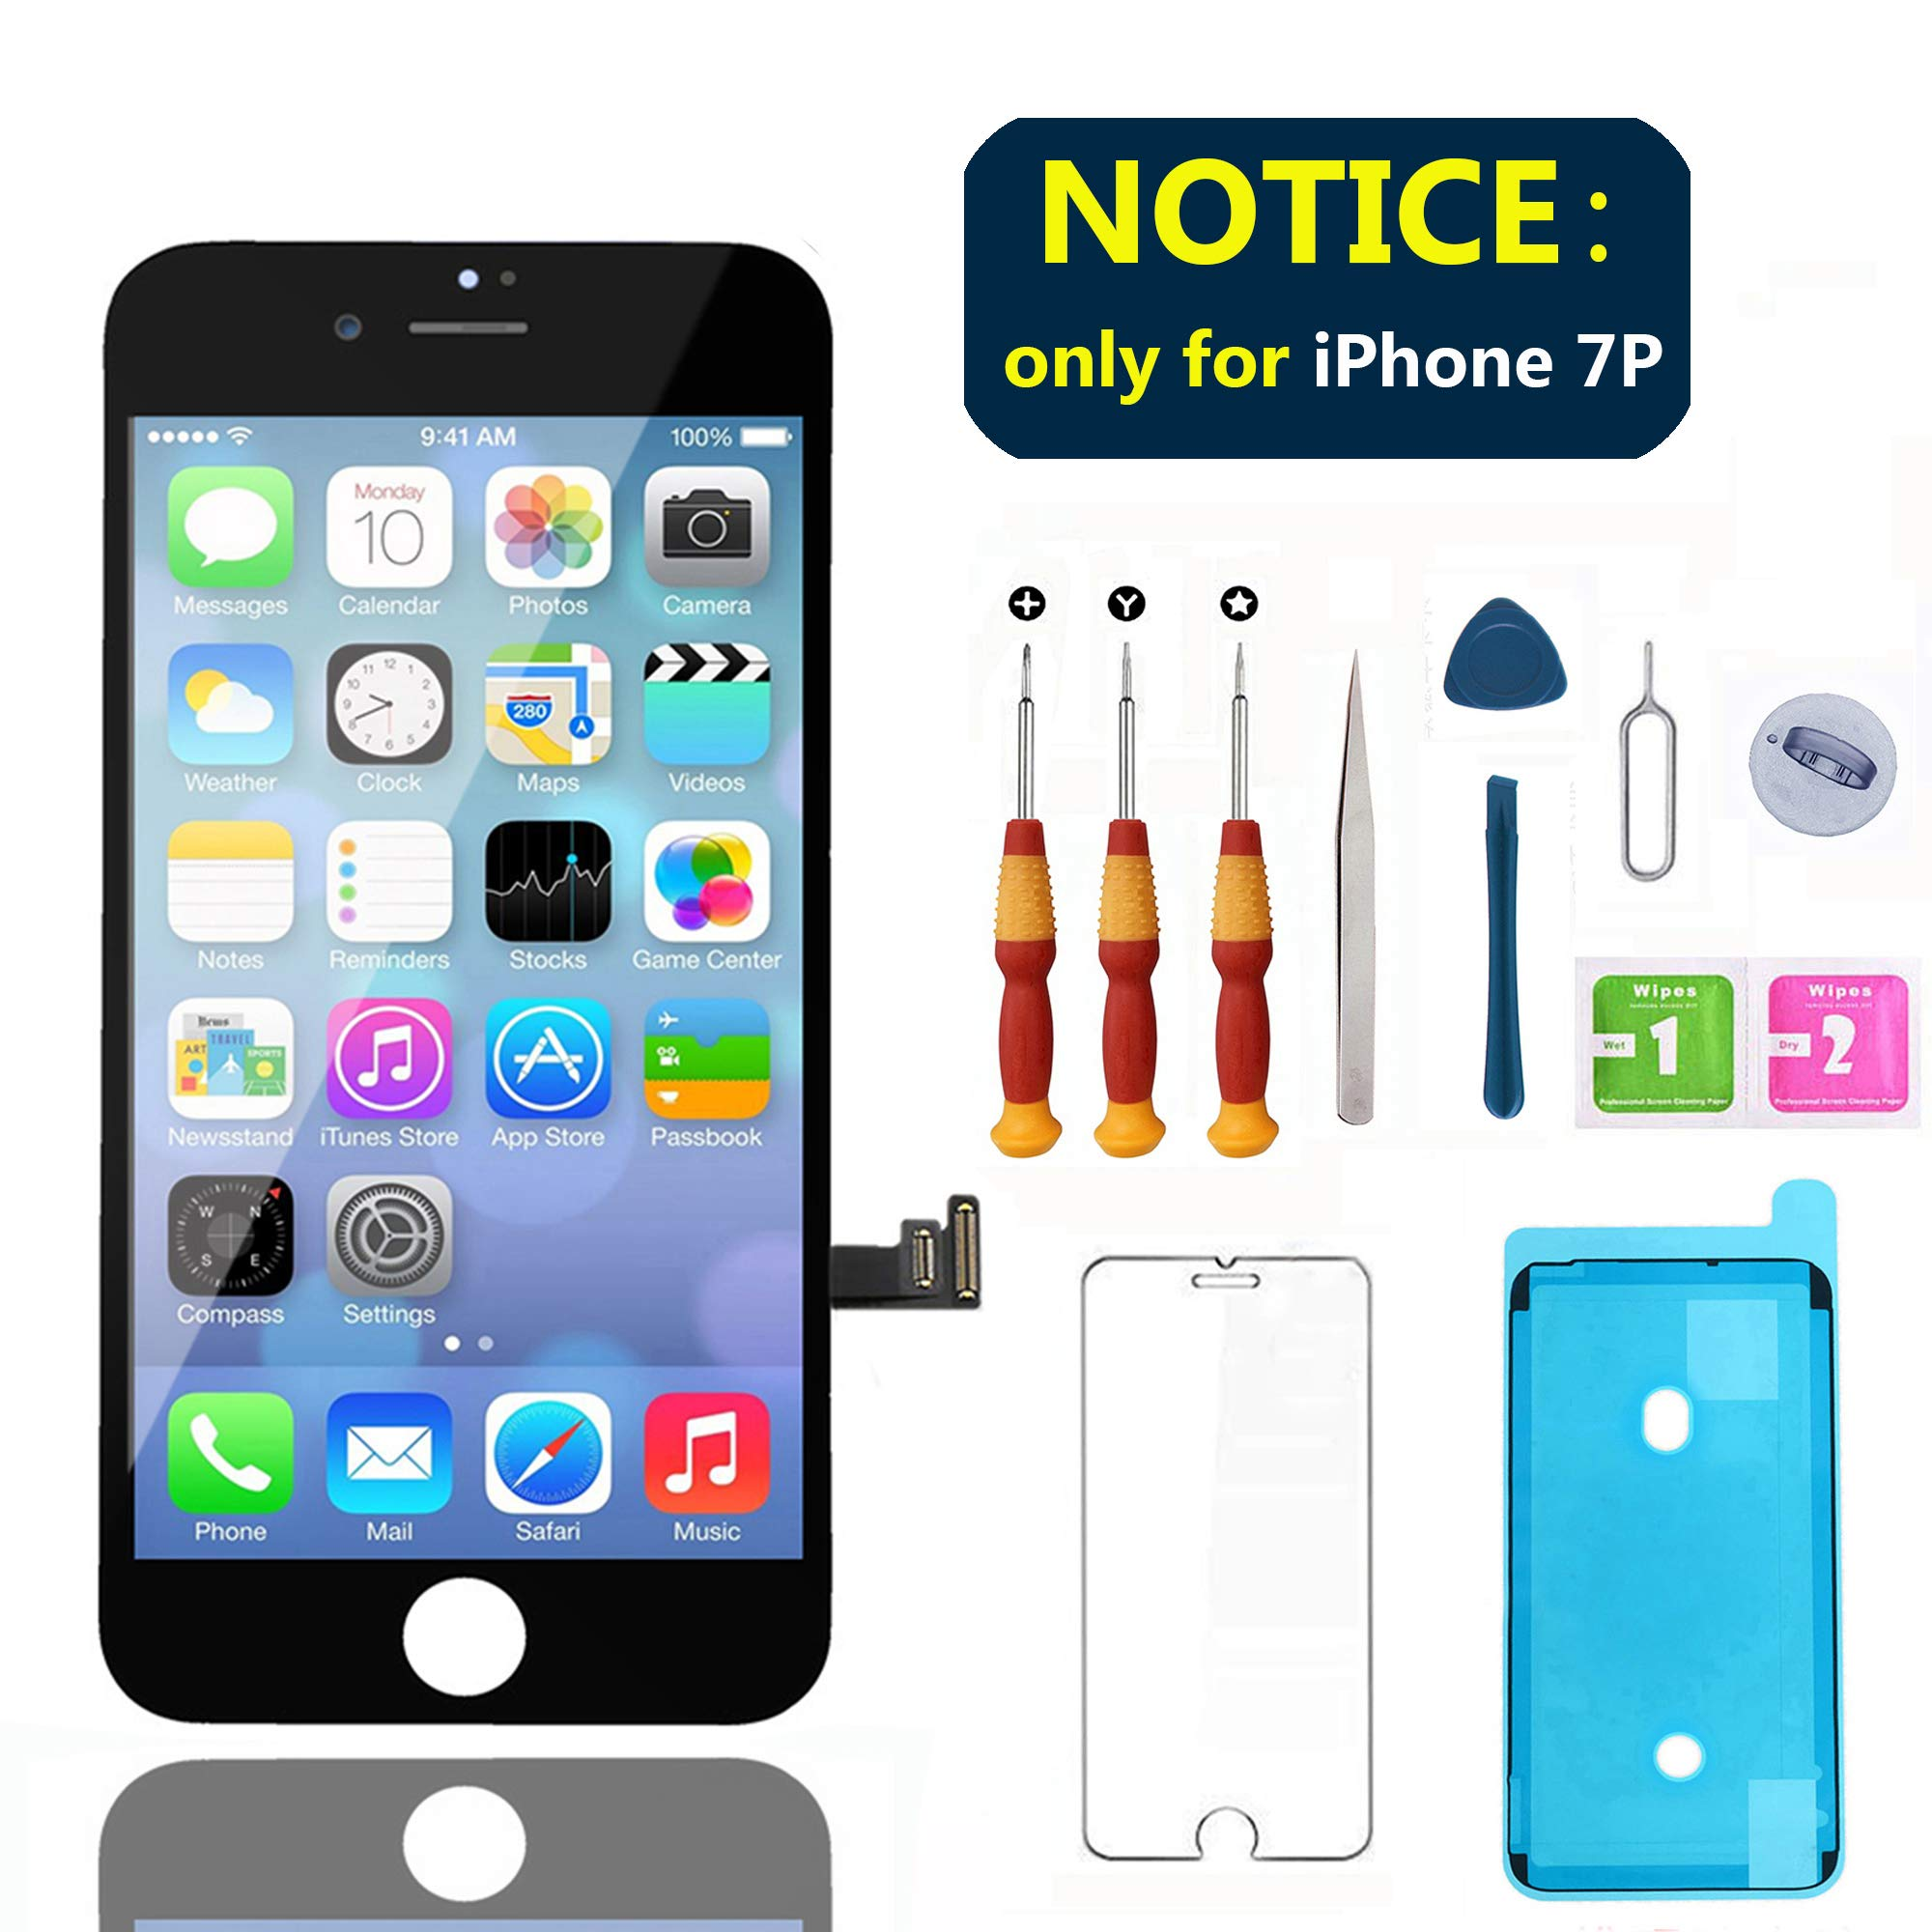 Swgrdin 3D Touch Screen Full Frame Assembly for iPhone 7 Plus Screen Replacement Black 5.5'', LCD Screen for iPhone 7 Plus Digitizer with Tool Kits and Screen Protector, A1661, A1784, A1785 Only by Swgrdin